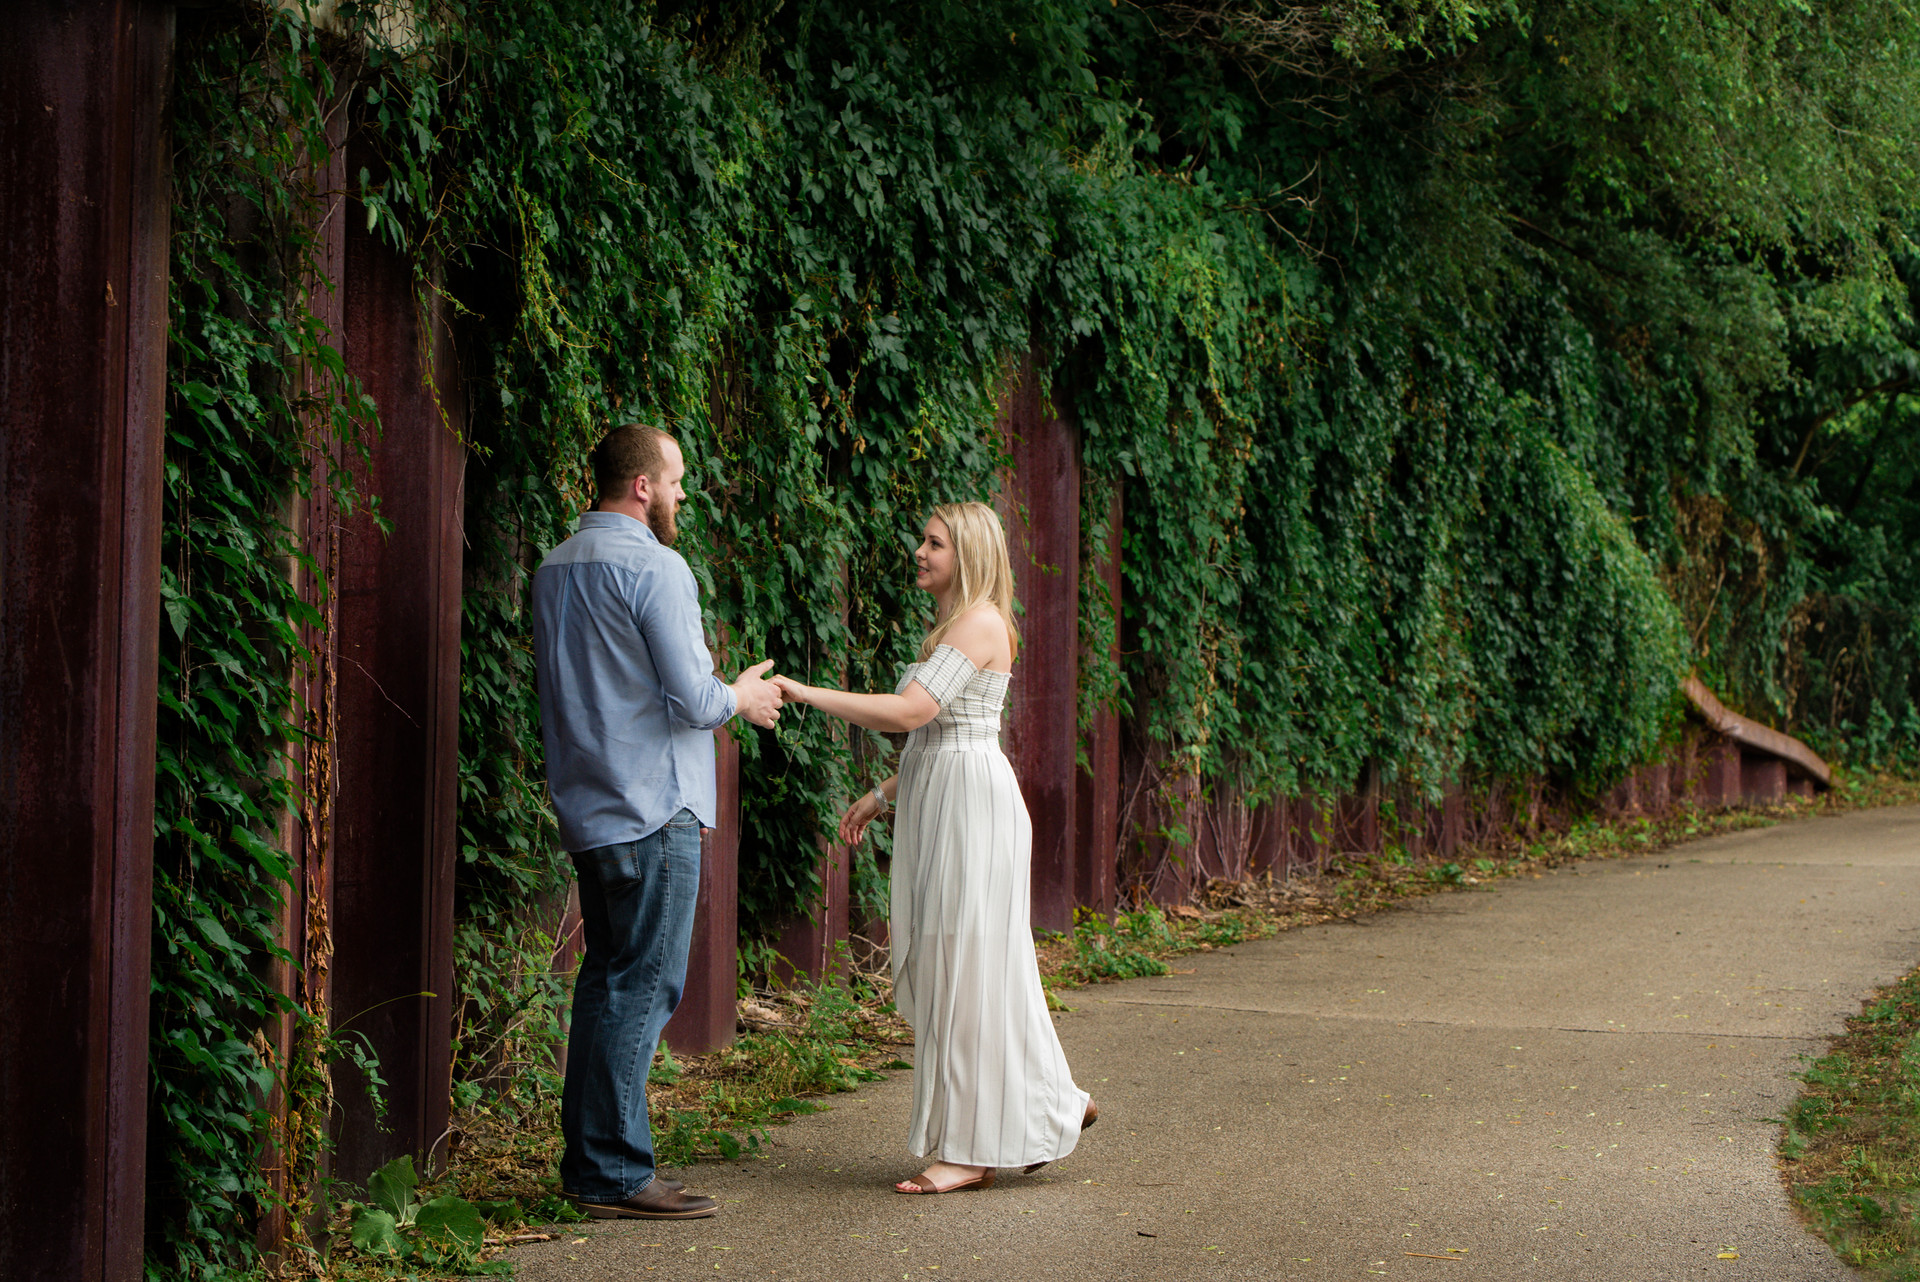 Jessica M. Photography Engagement Photographer Cary IL